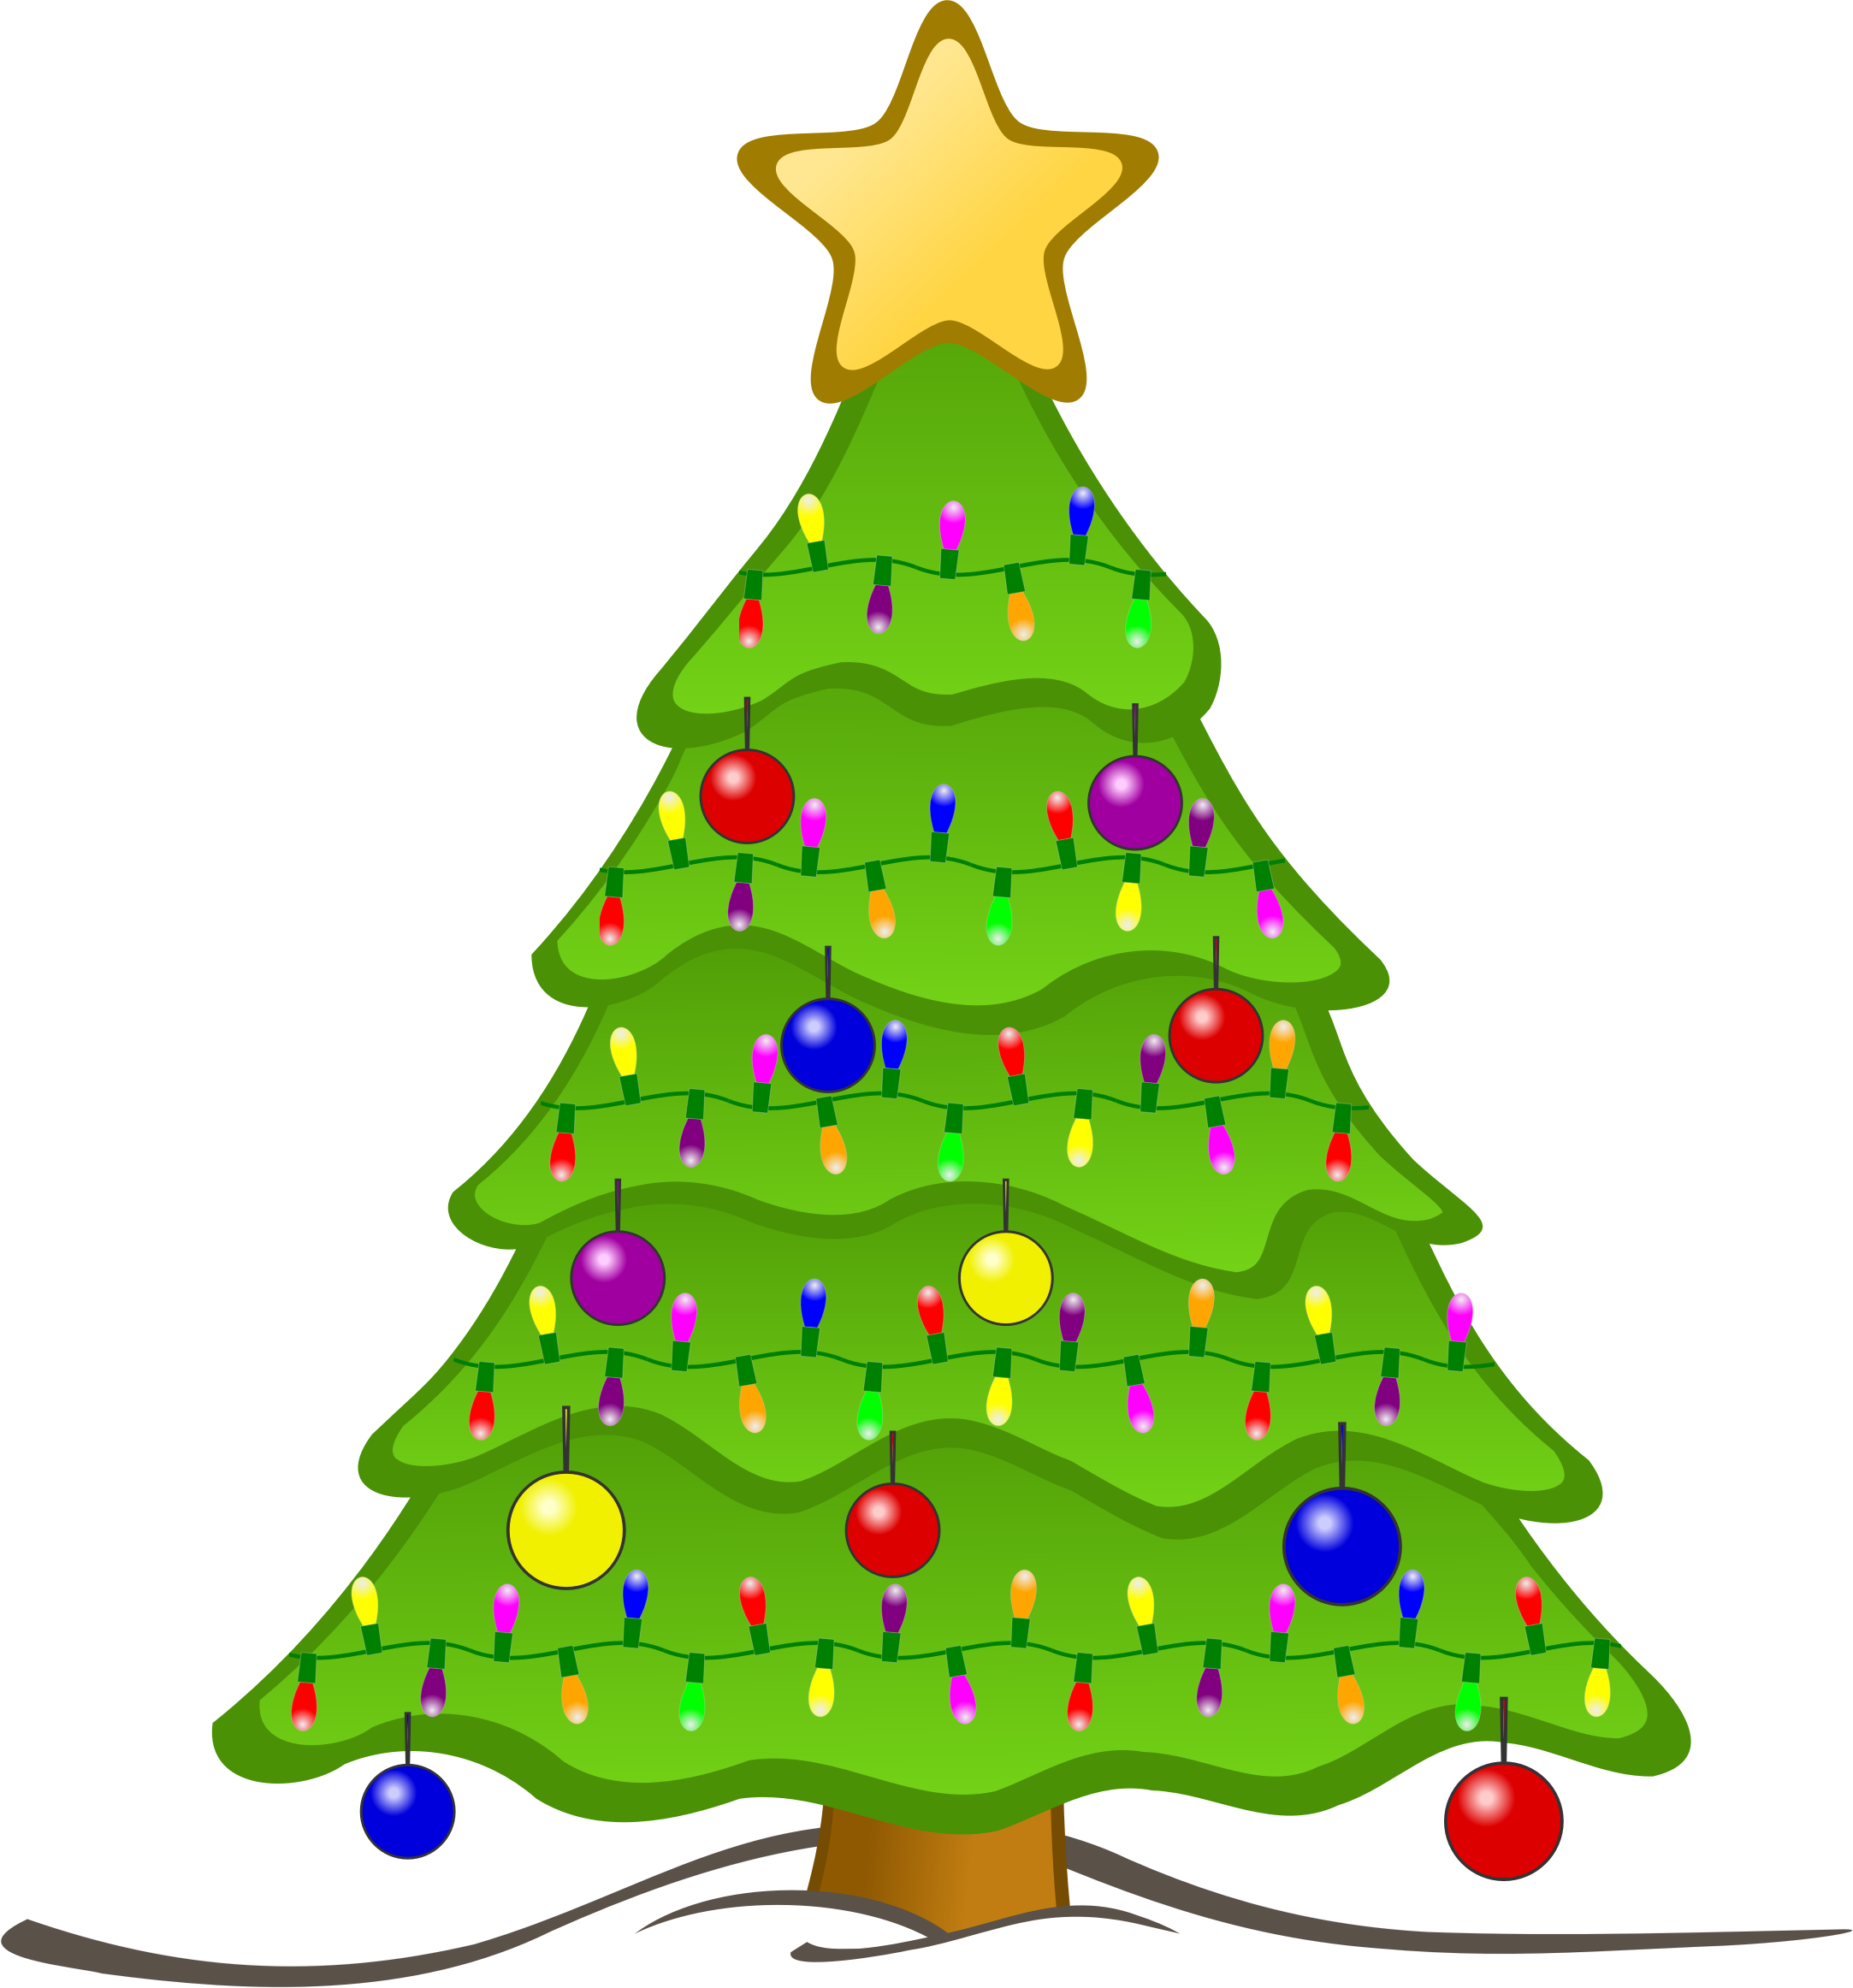 6 Animated Christmas Tree Graphic Images